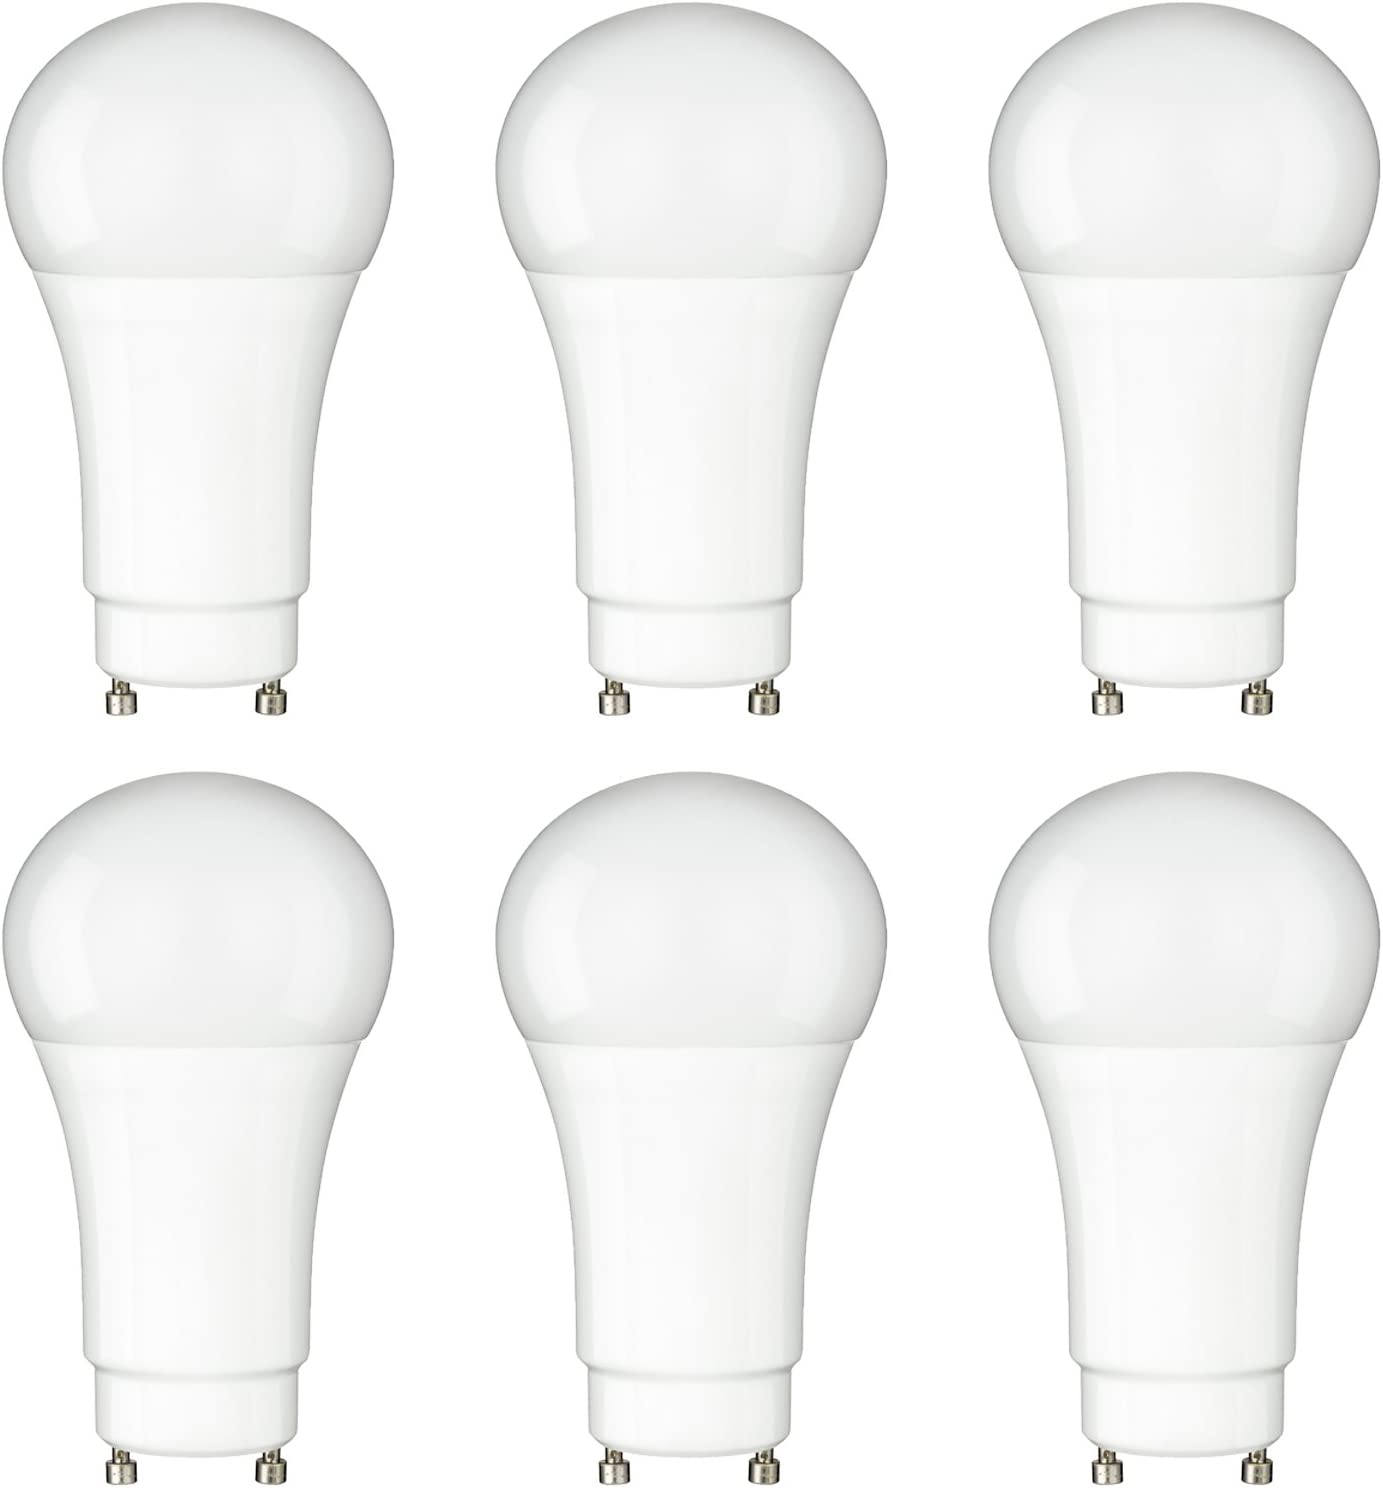 Sunlite A19//GU24//LED//10W//D//E//40K LED 10W 4000K Cool White Light 1 Pack 4000K-Cool GU24 Base Frosted A19 Bulbs 60W Equivalent